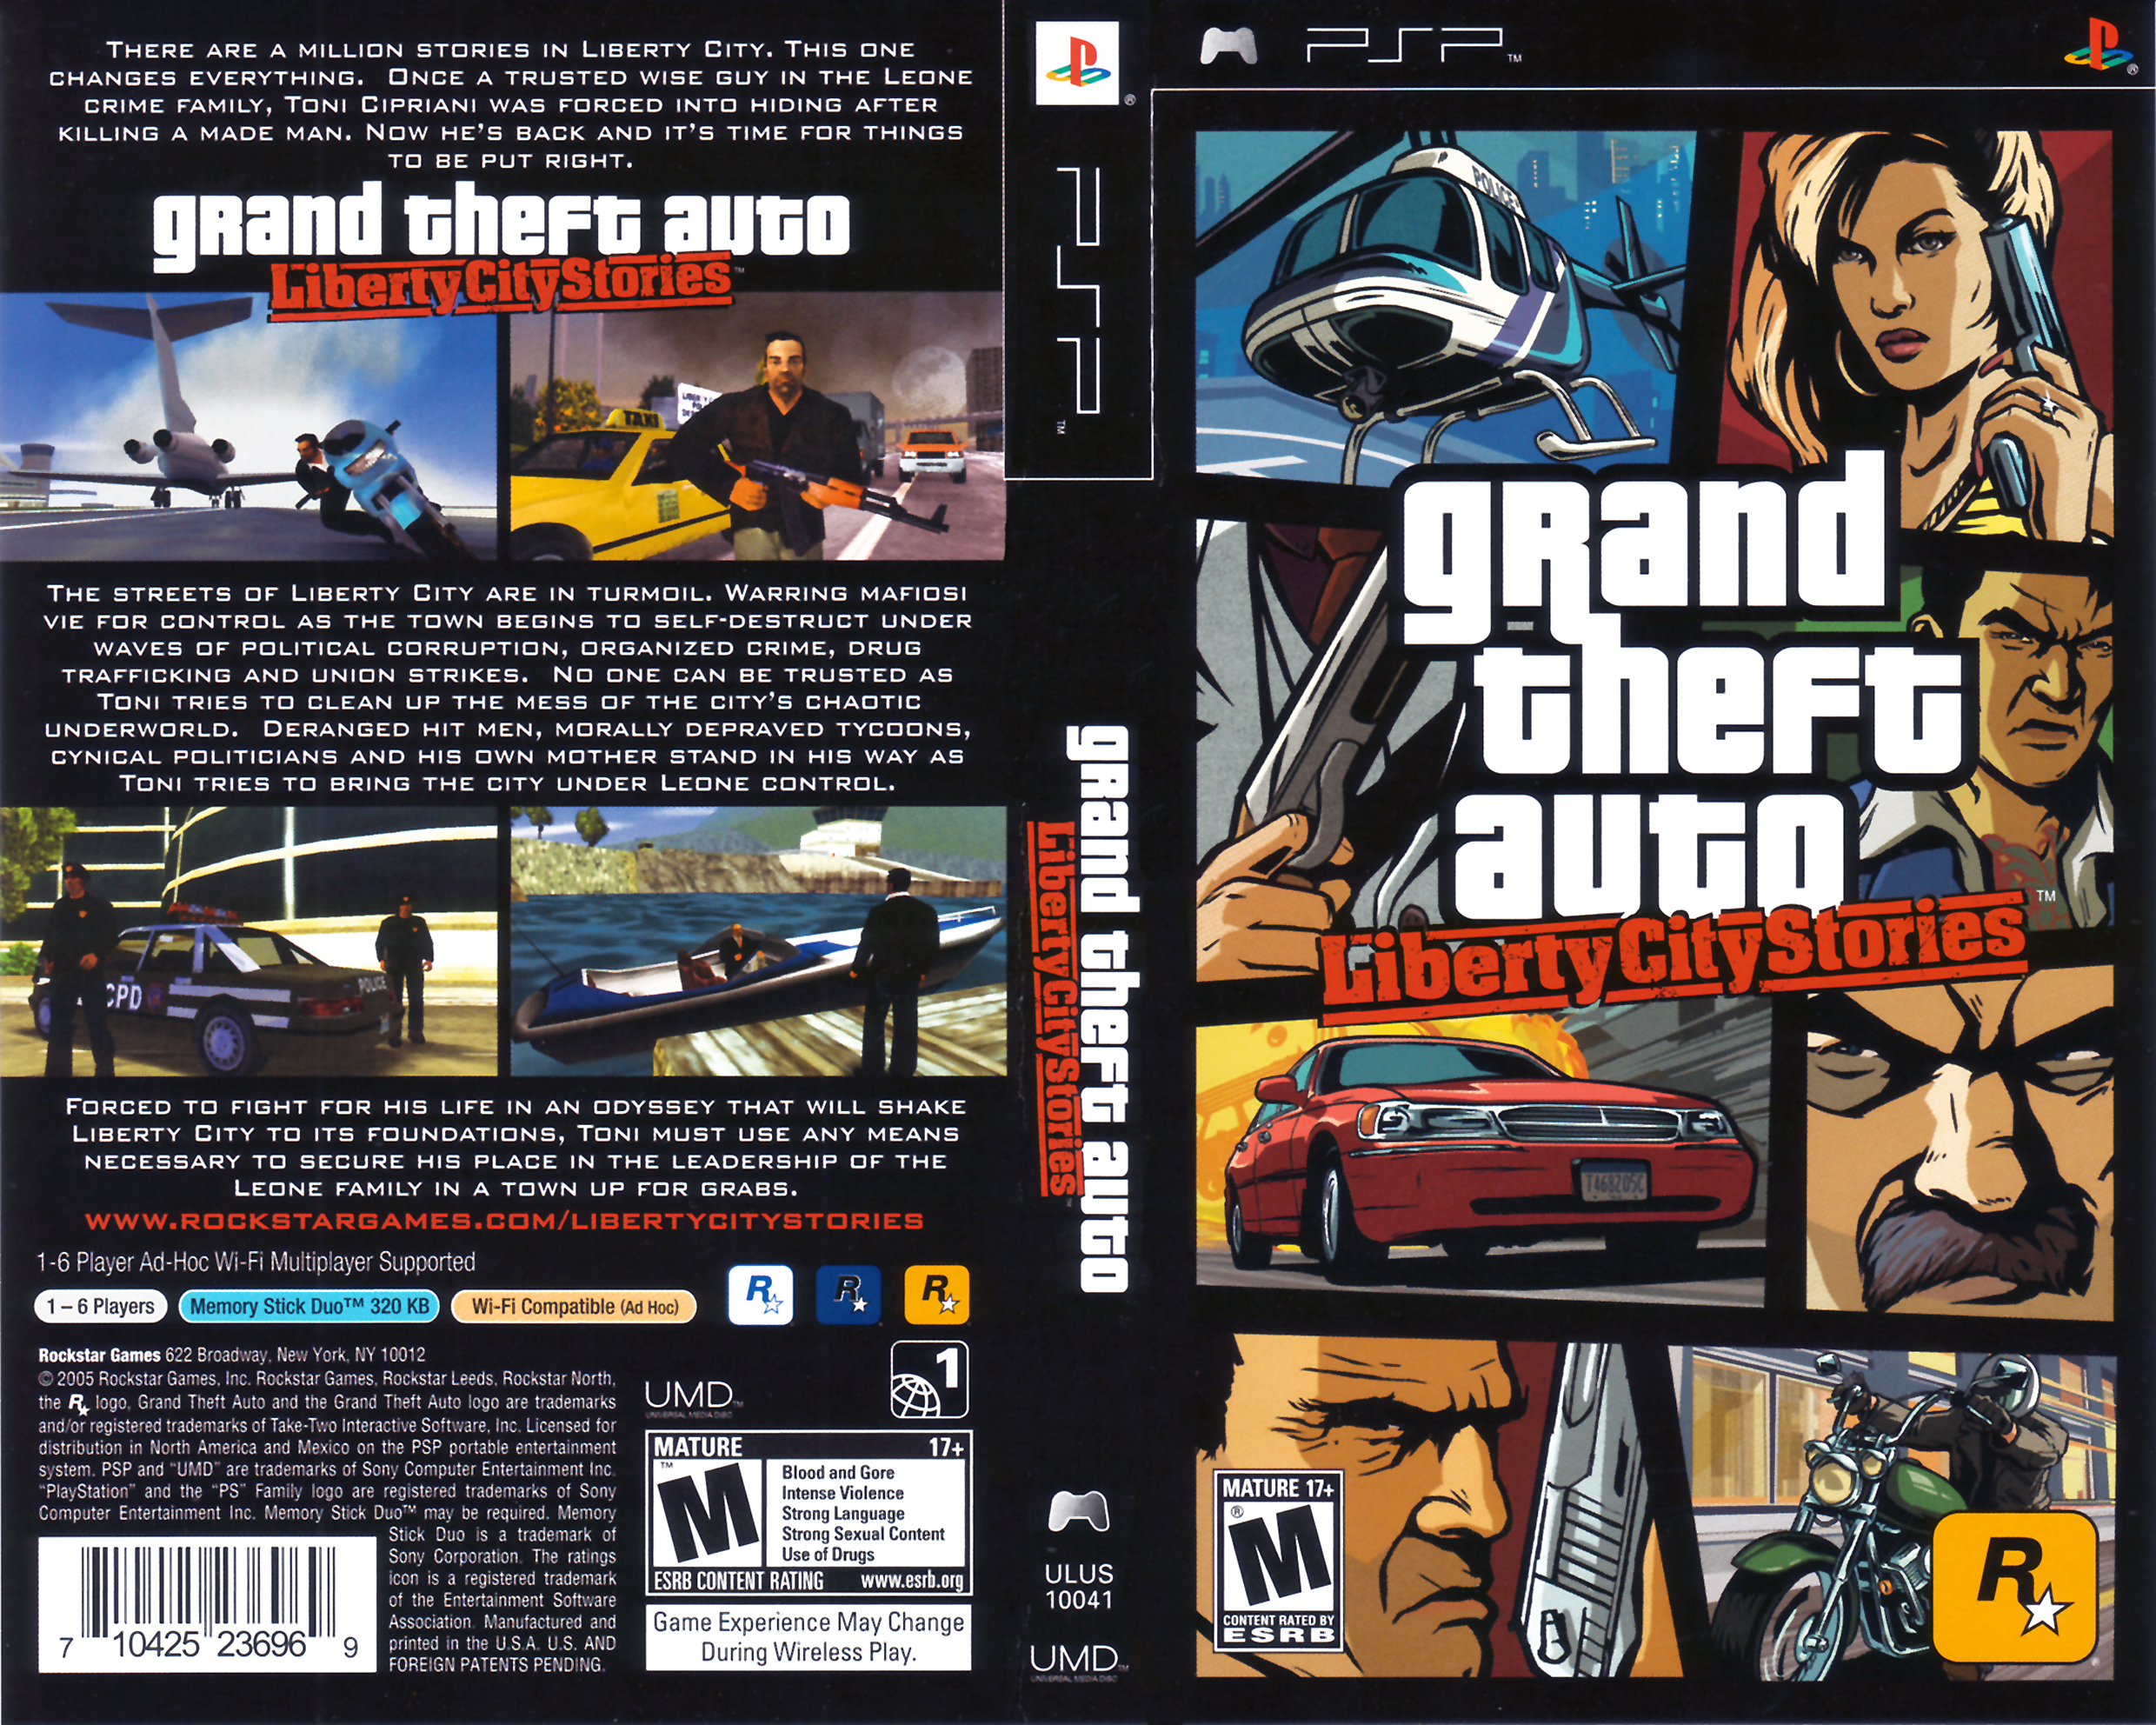 Grand Theft Auto: Liberty City Stories Pics, Video Game Collection